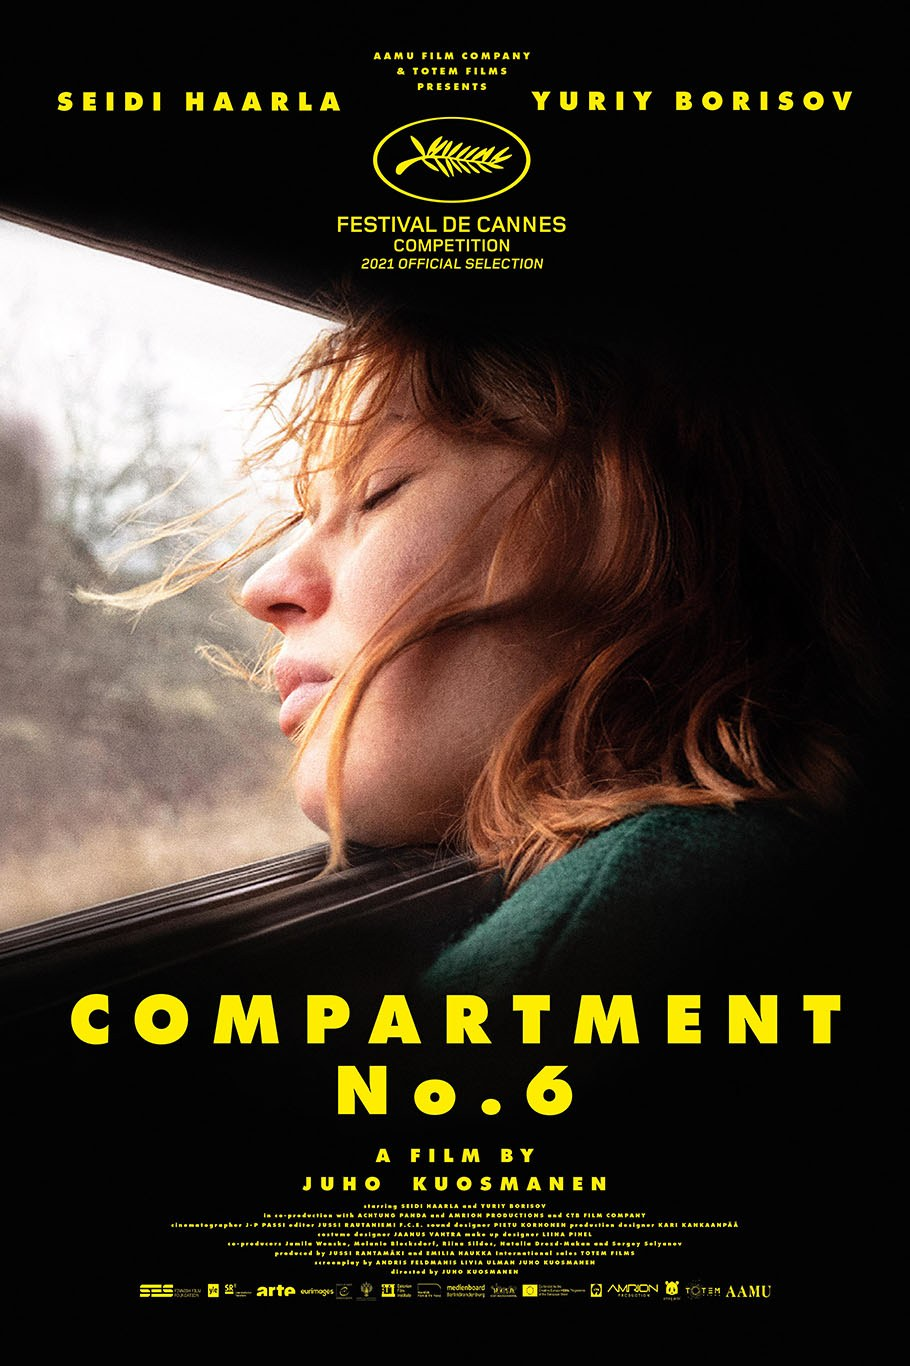 Compartment Number 6 film poster